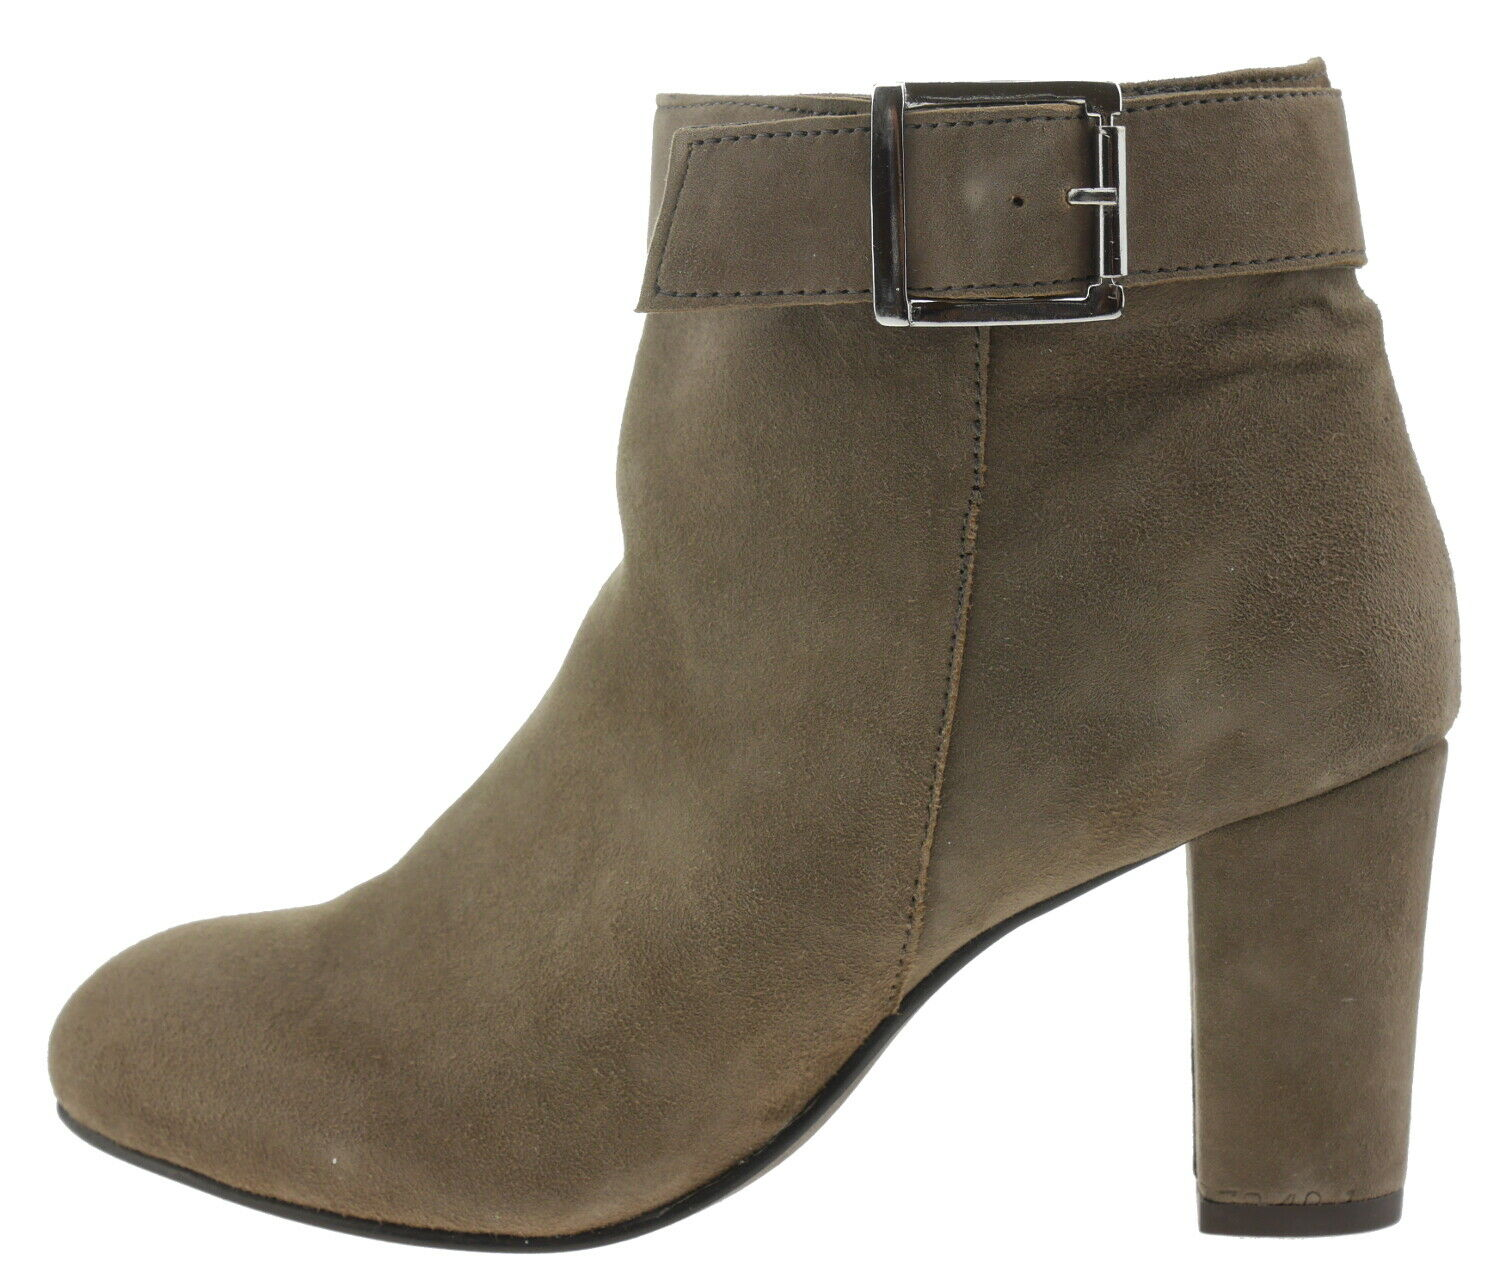 Lazamani 53330 Ankle Boots Suede Taupe 182722